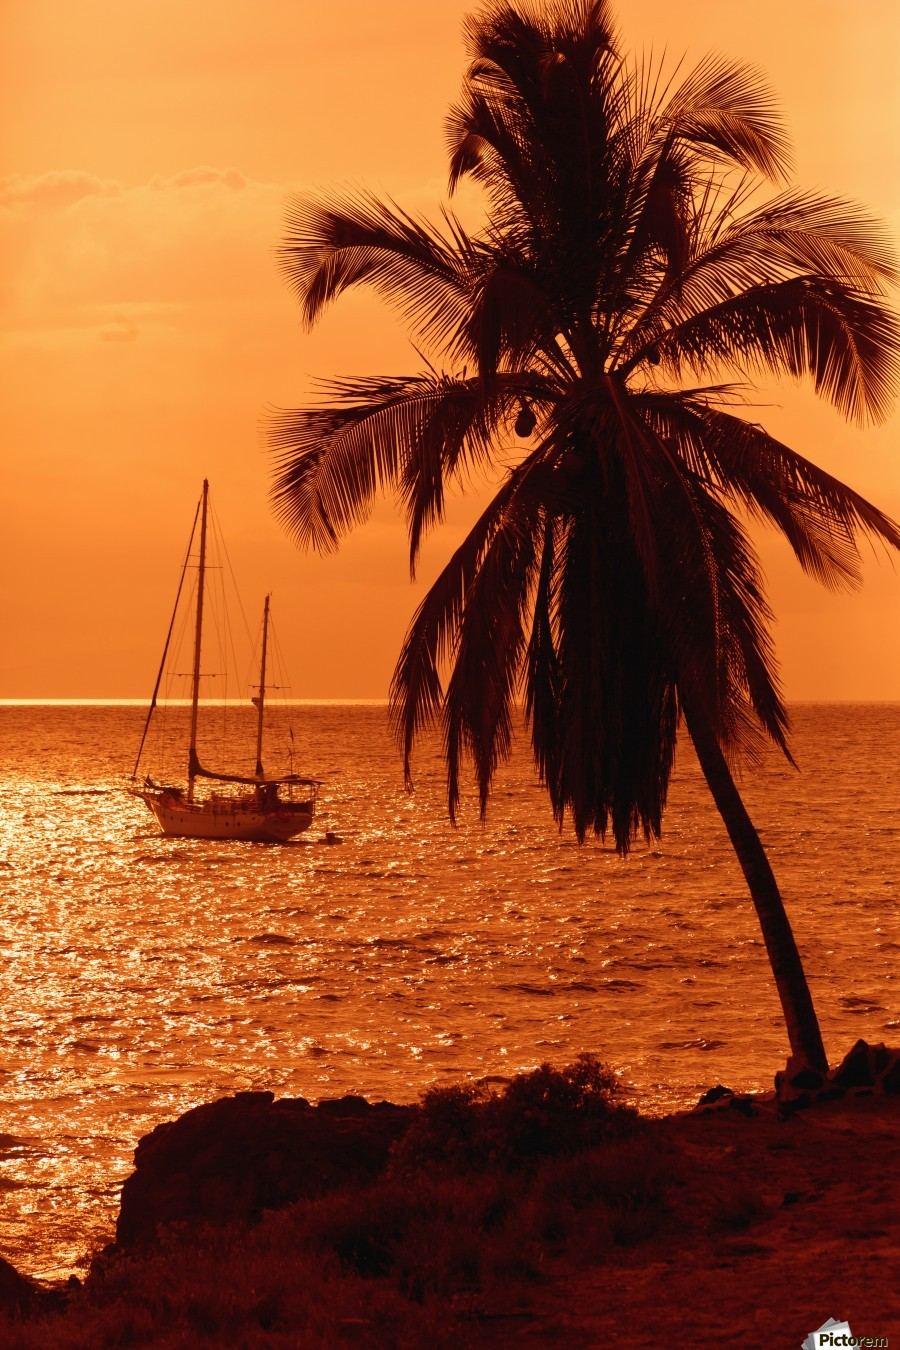 Sailboat and palm tree at sunset; Kihei, Maui, Hawaii, United States of America  Print